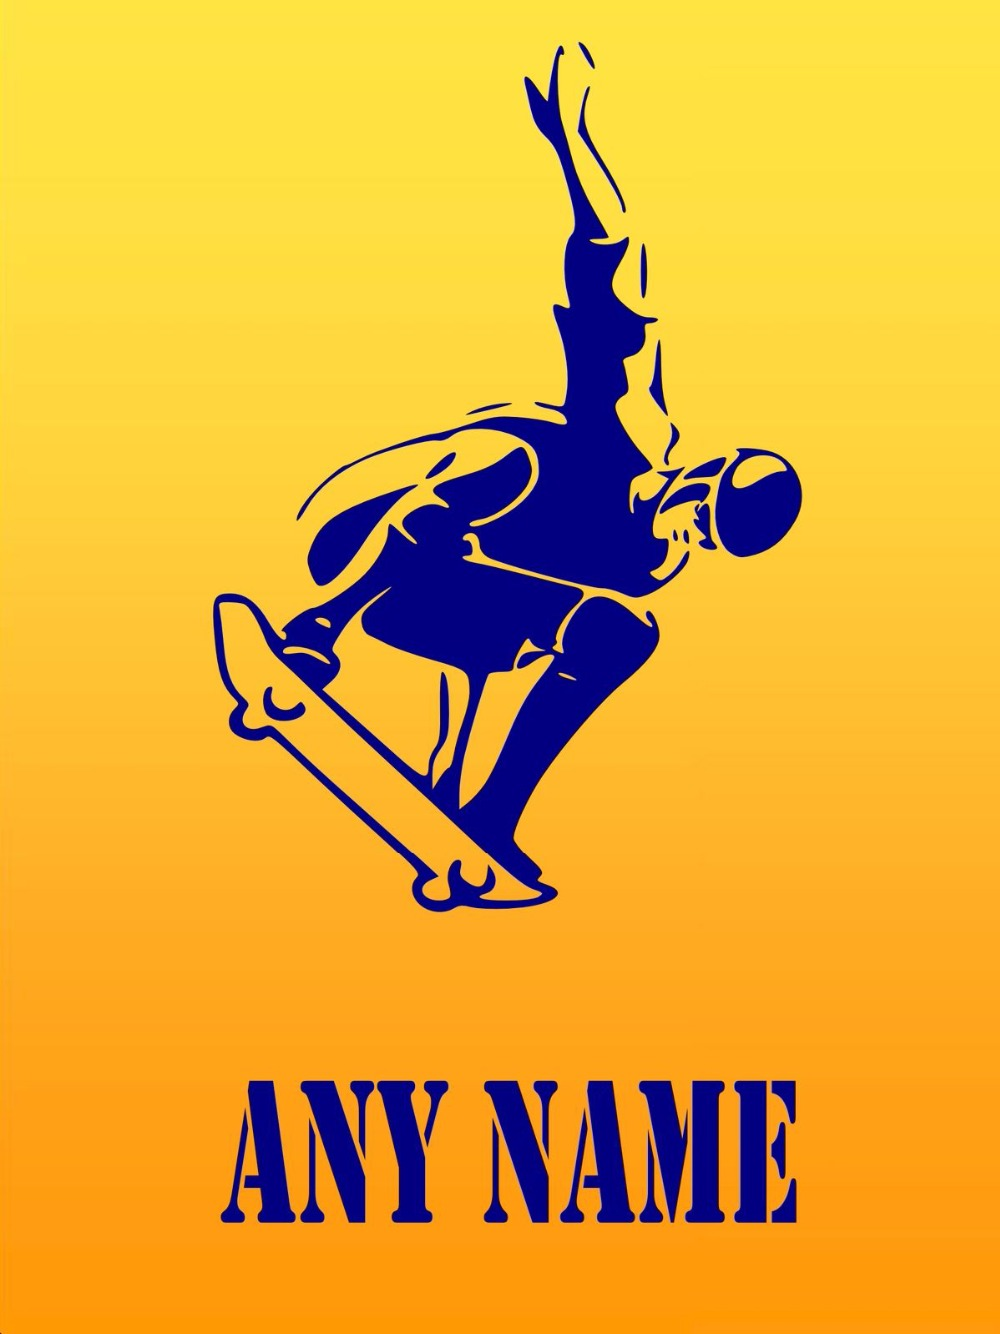 Personalised Boys Riding A Skater Vinyl Wall Sticker Any Name Kids ...